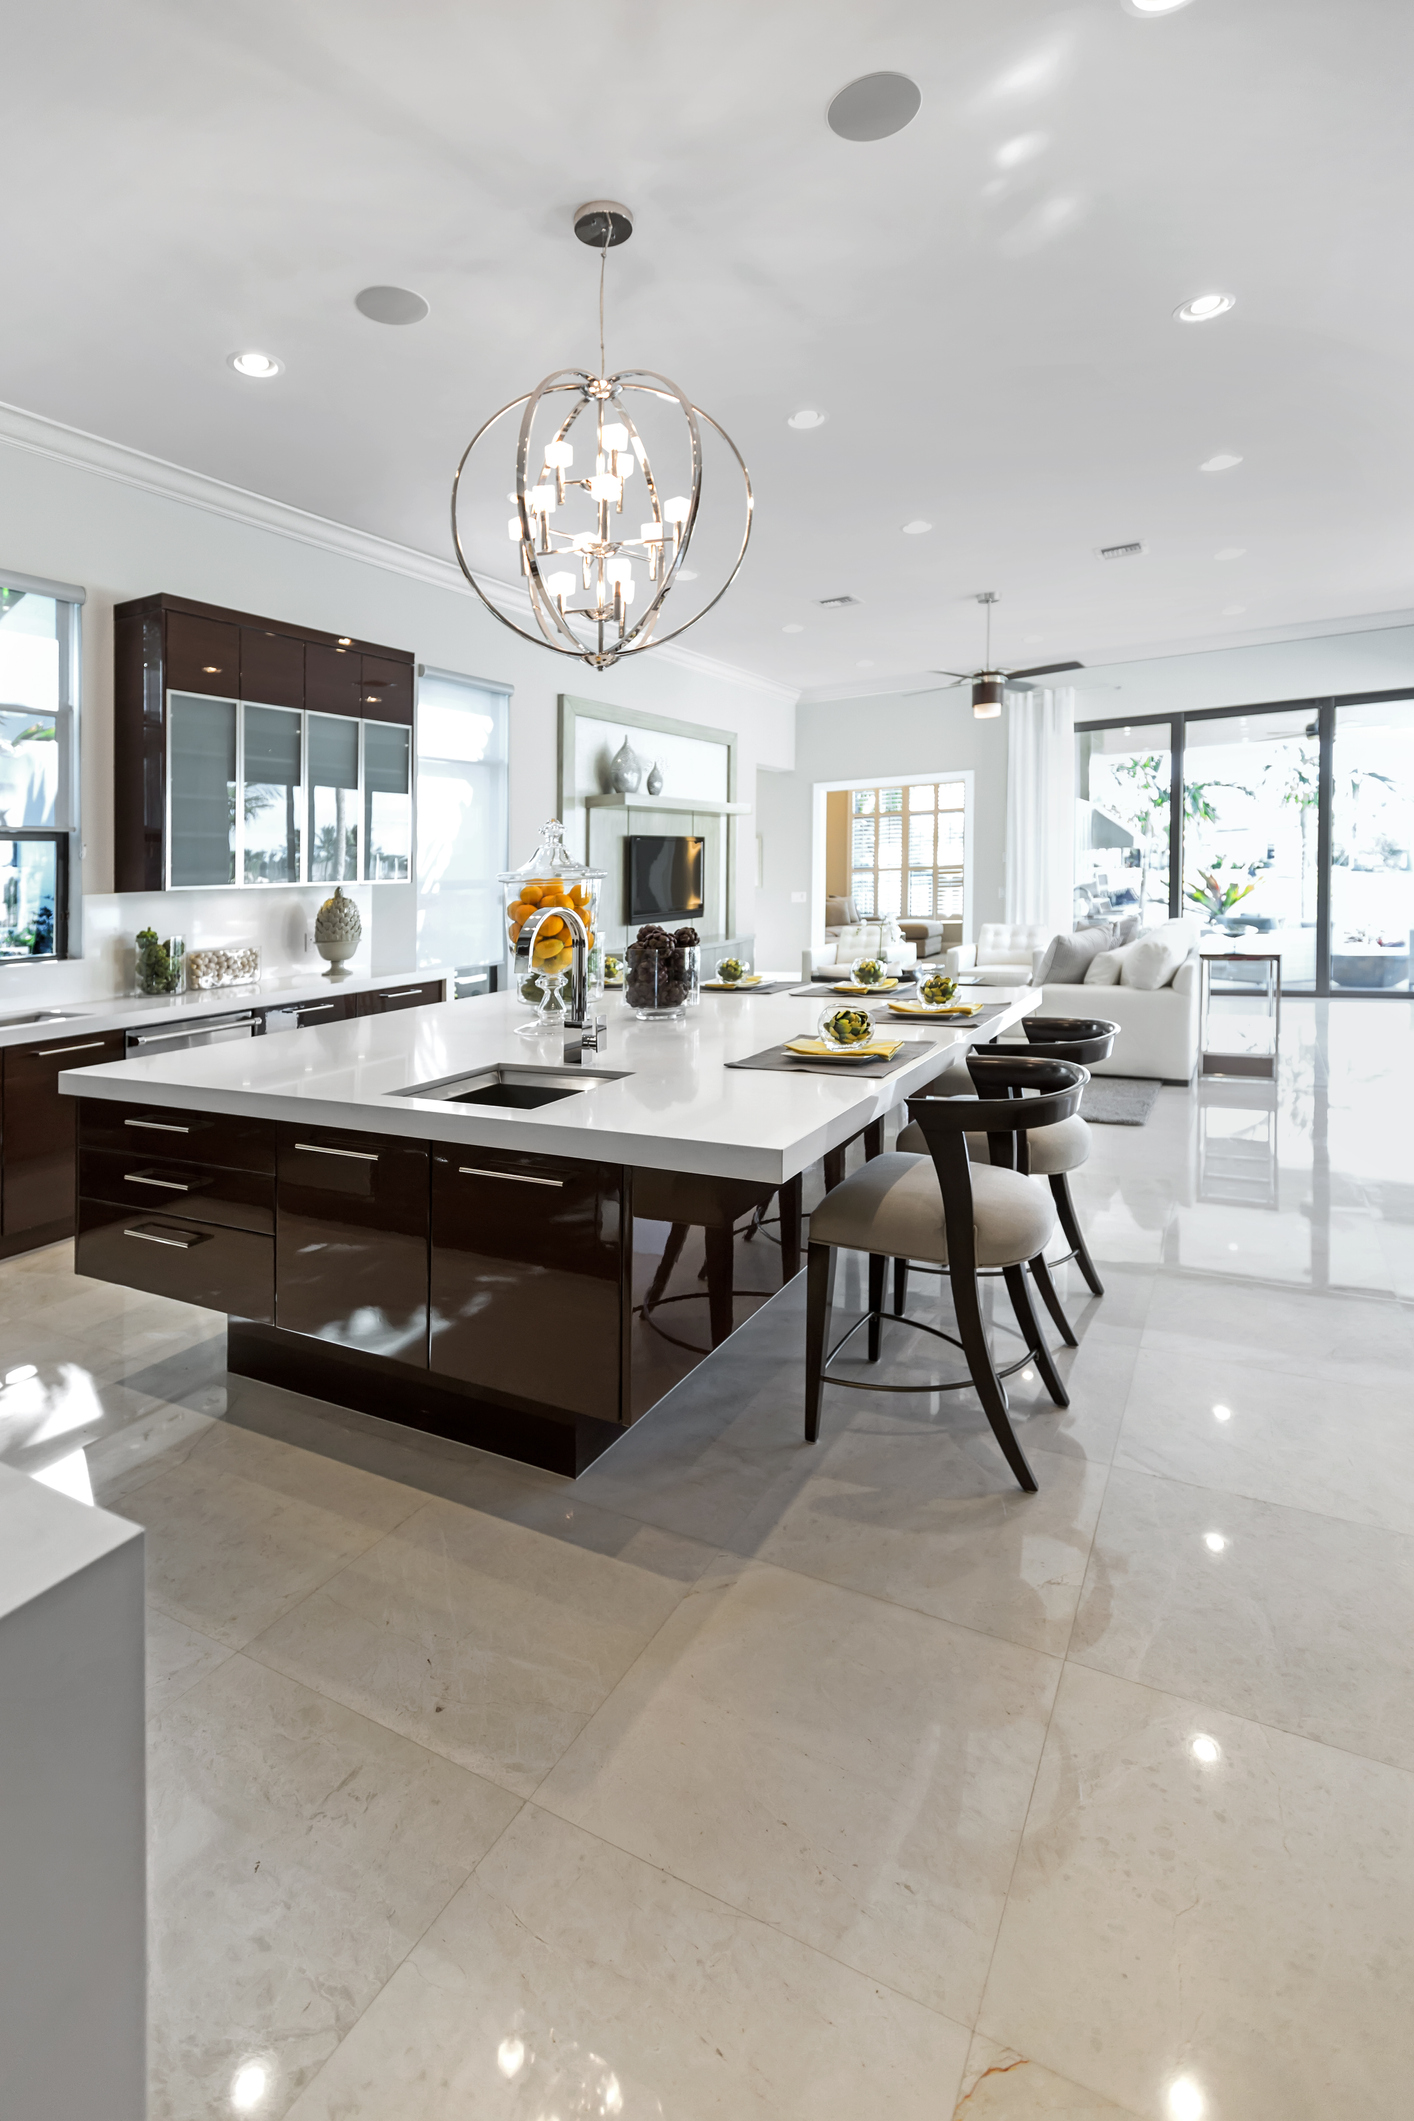 Beautiful Modern kitchen with a counter height table